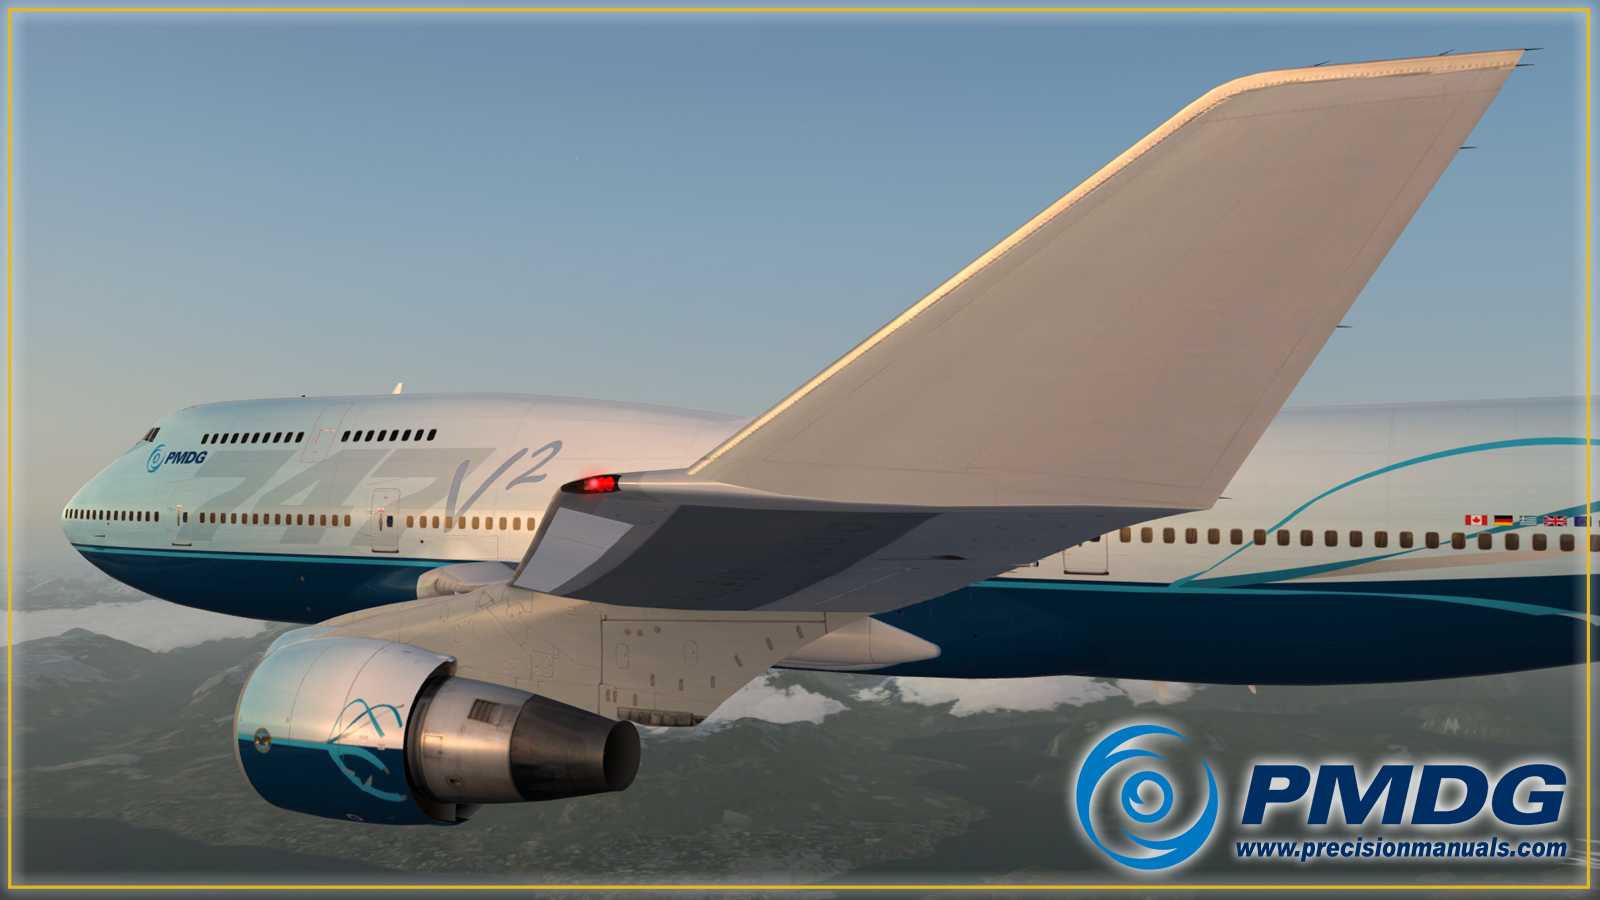 Cleared To Land :: Our latest Update on the PMDG 747-400 Version 2!!